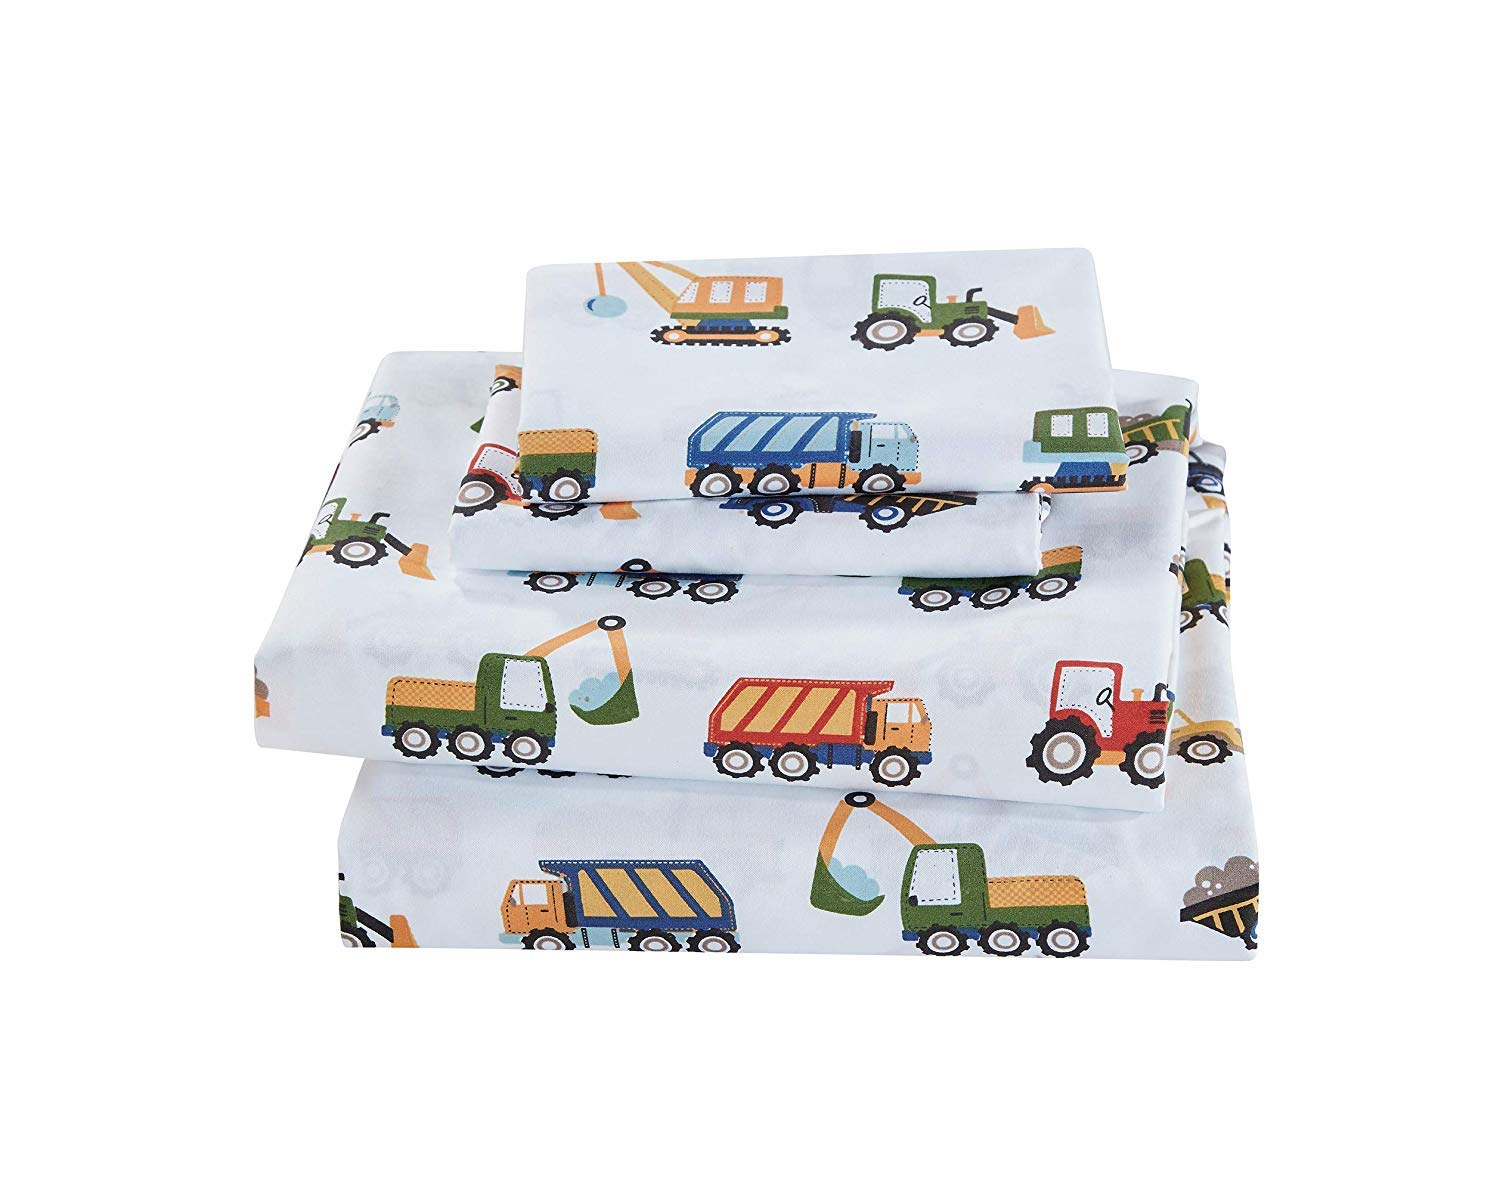 Elegant Homes Construction Site Equipment Trucks Tractors Cranes Excavators Design 4 Piece Printed Sheet Set with Pillowcases Flat Fitted Sheet for Boys/Kids # Construction Trucks (Full Size) by Elegant Homes